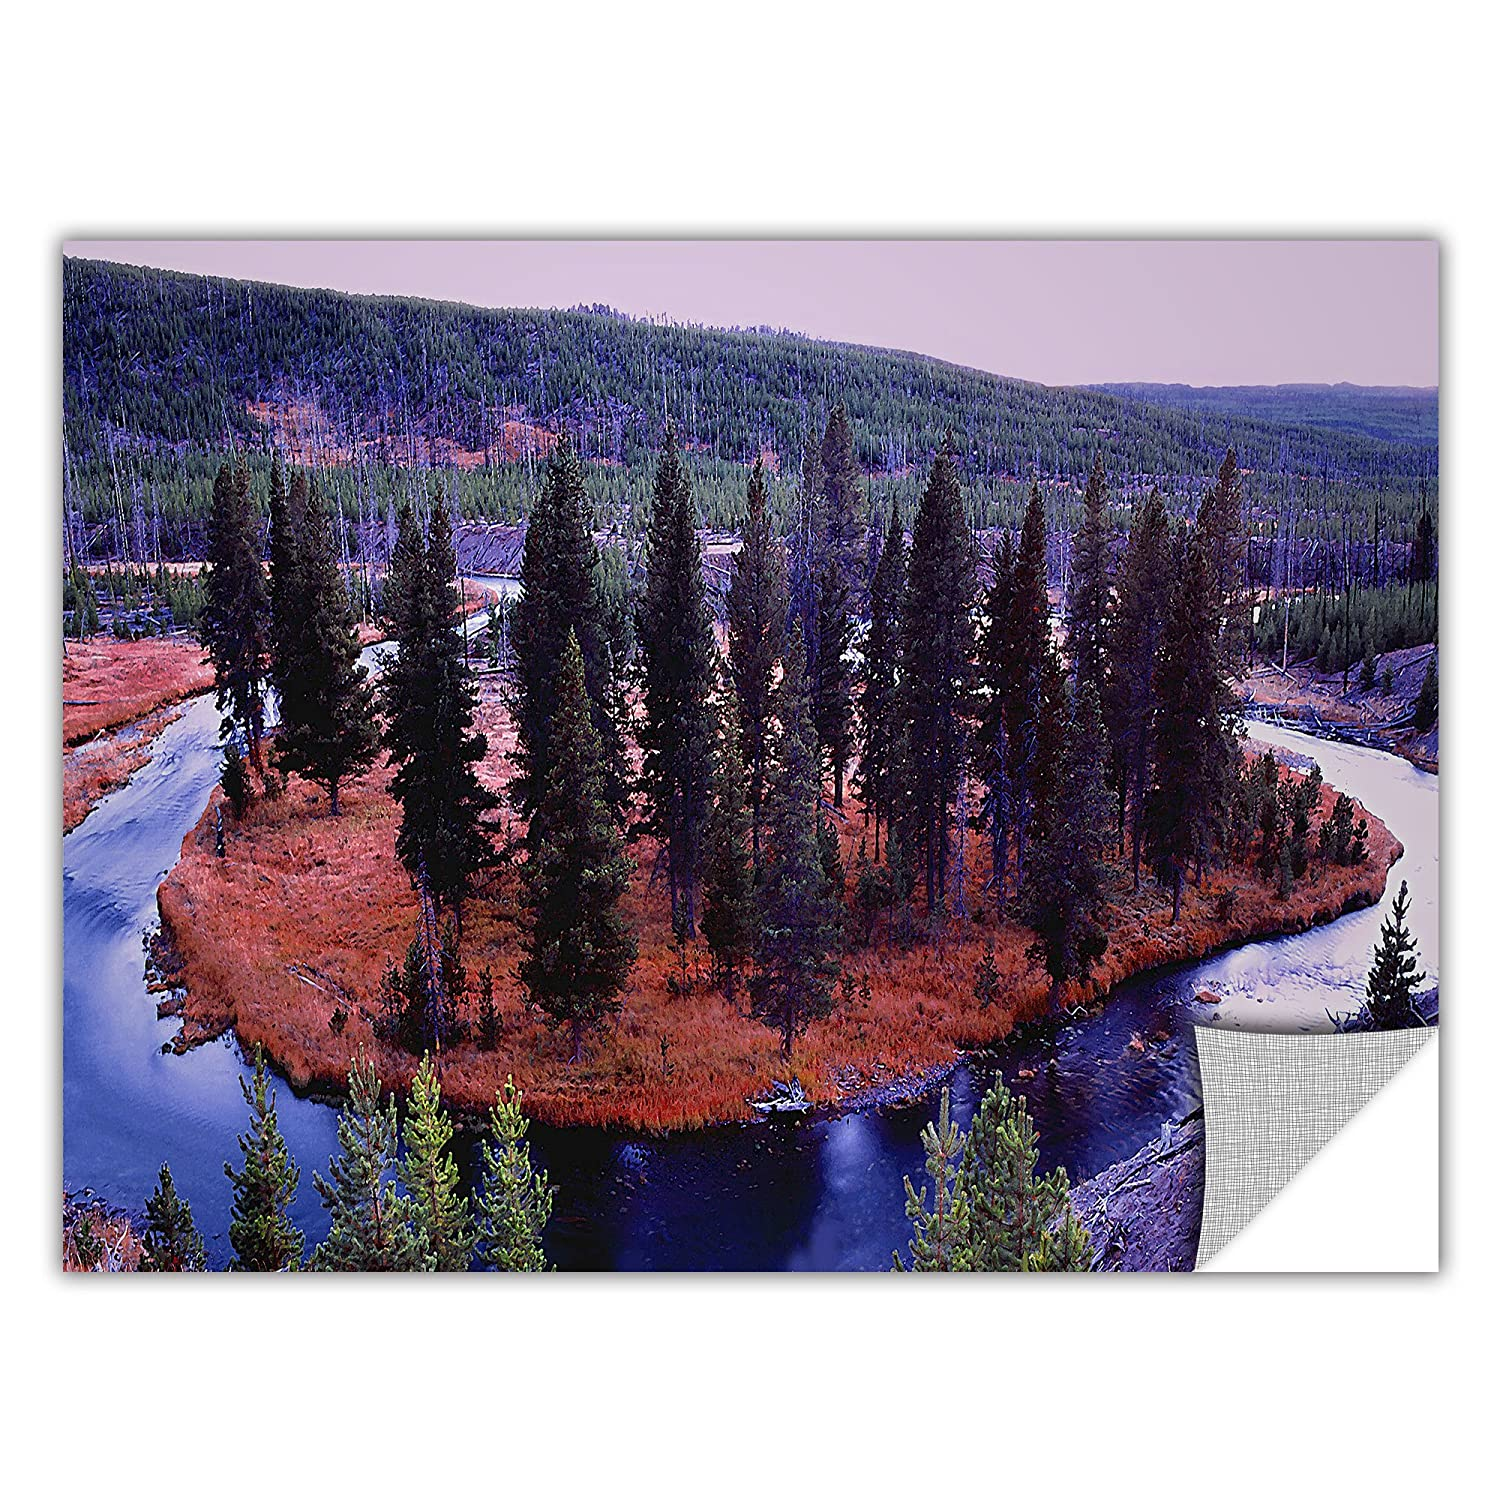 ArtWall ArtApeelz Dean Uhlinger Dusk Meander Yellowstone Removable Wall Art Graphic 12 by 18-Inch